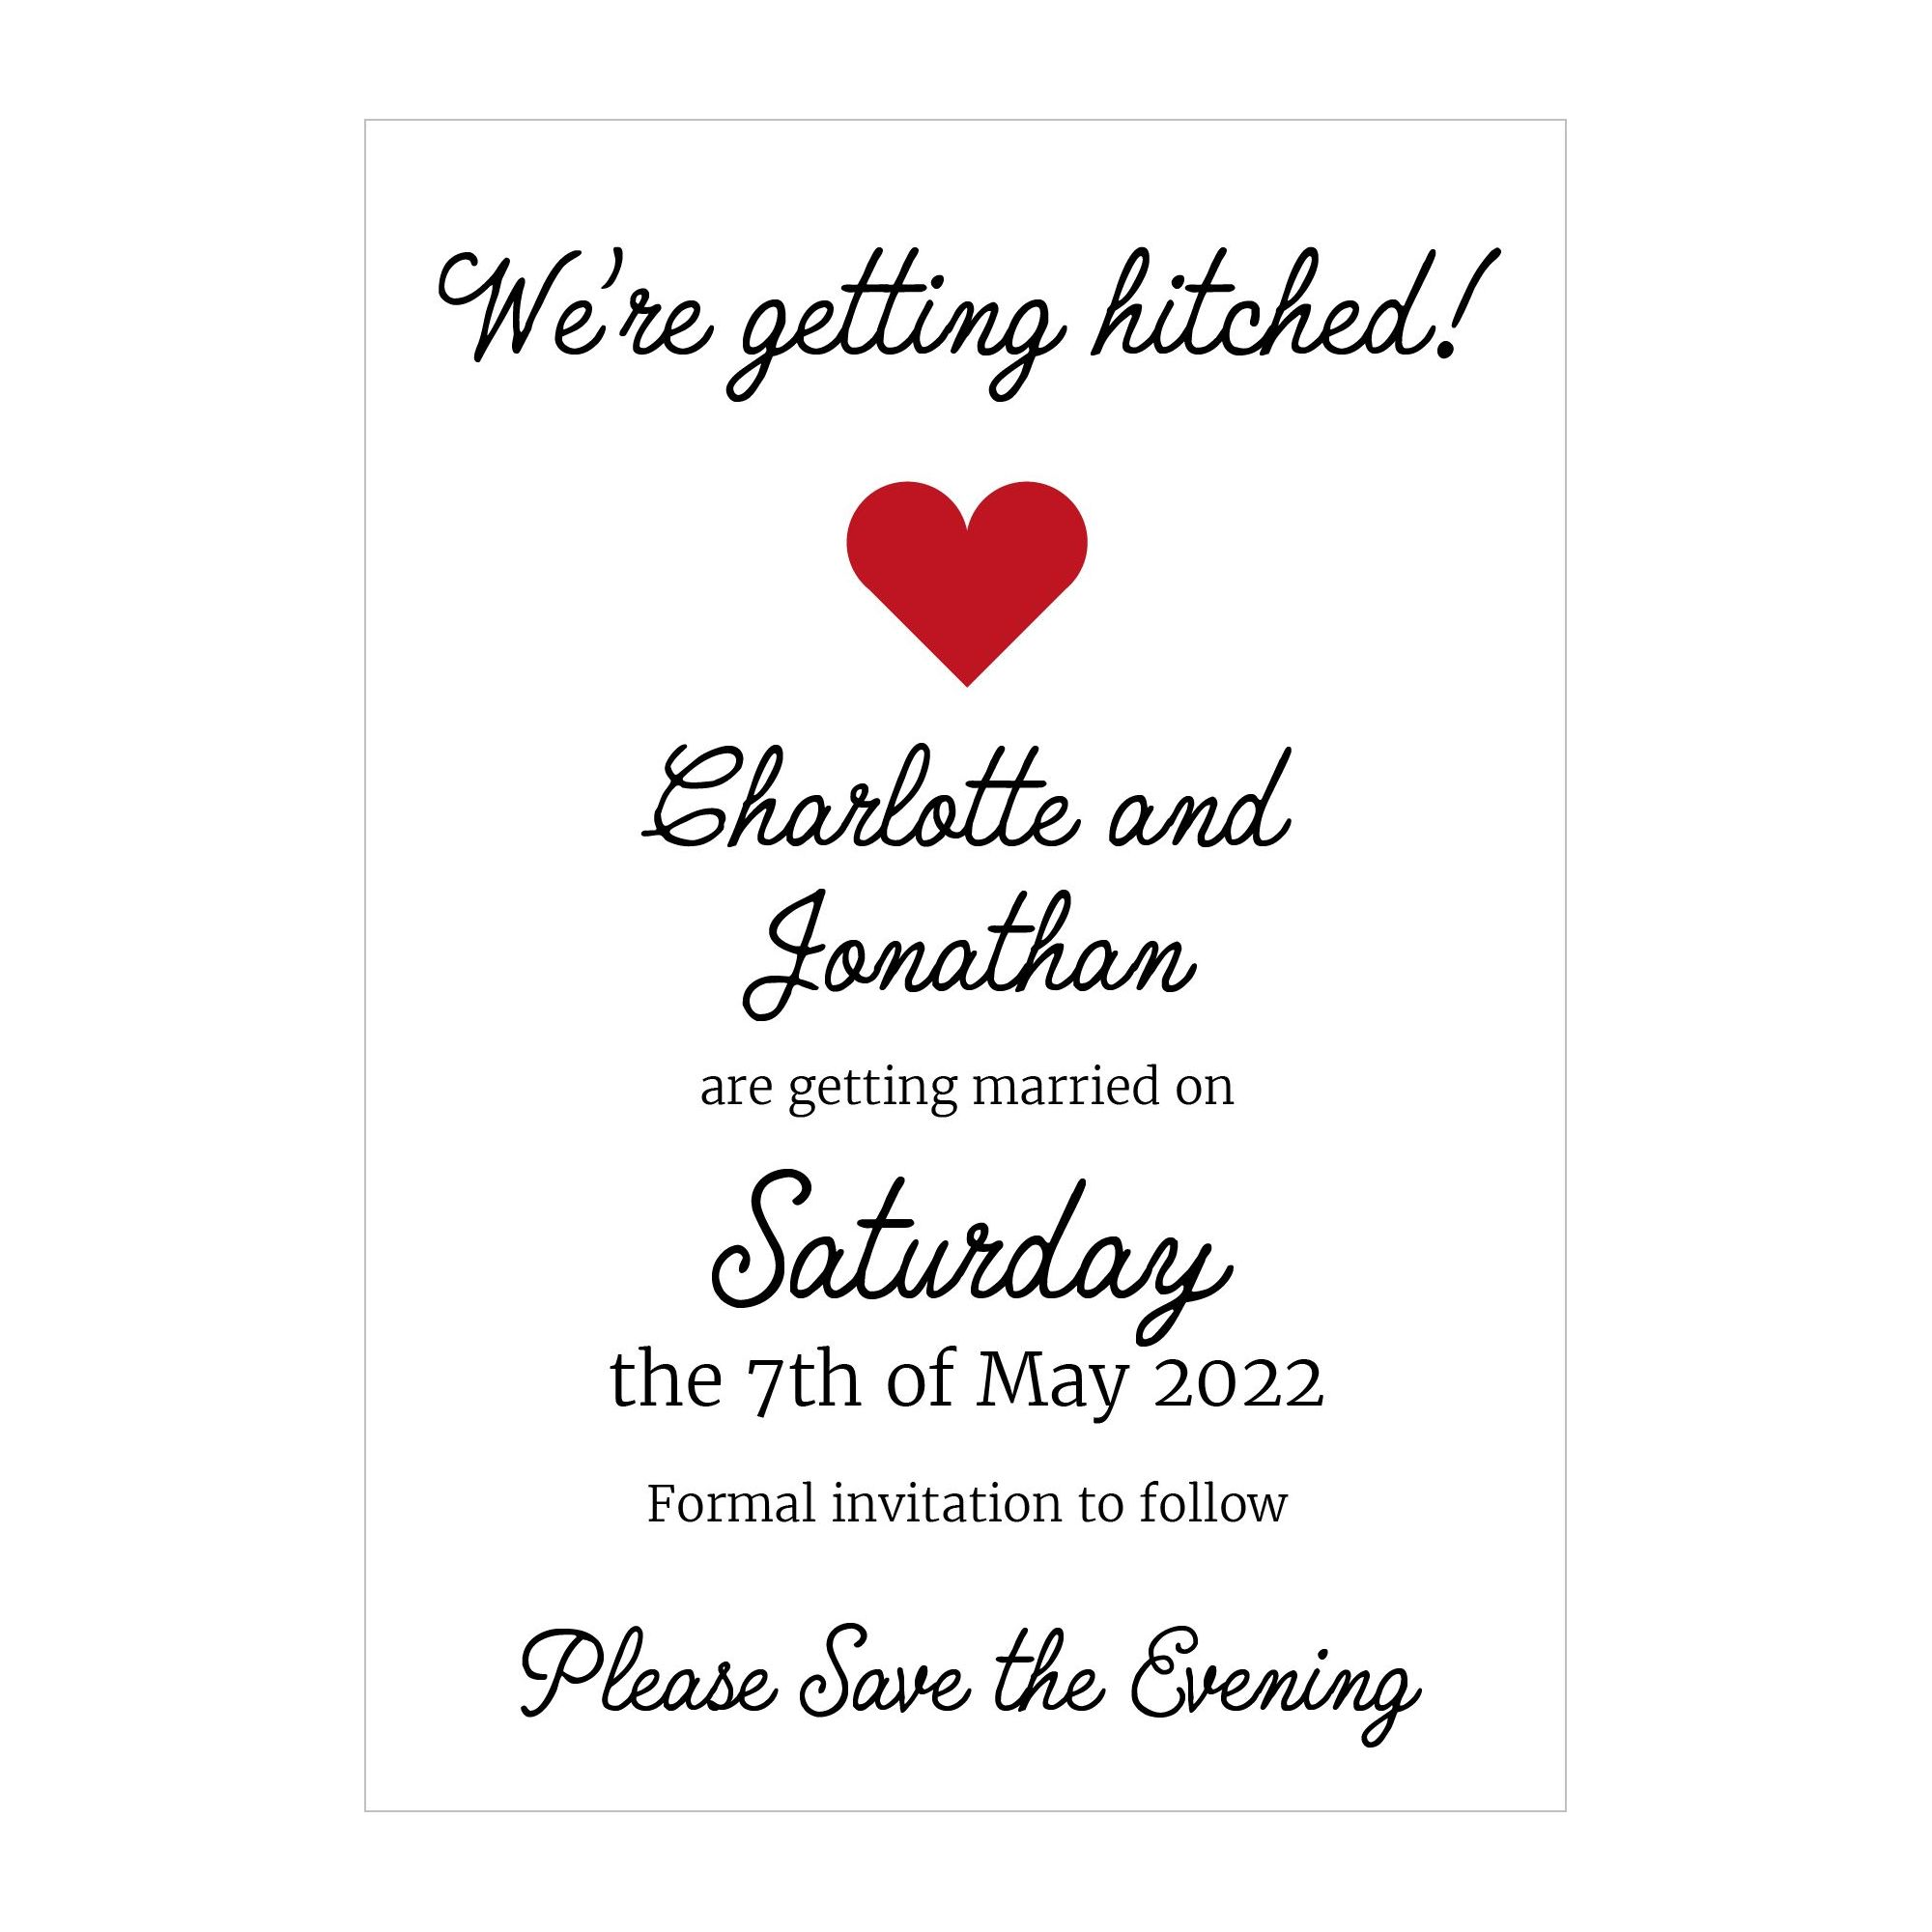 Recycled White We're Getting Hitched Save the Evening Cards